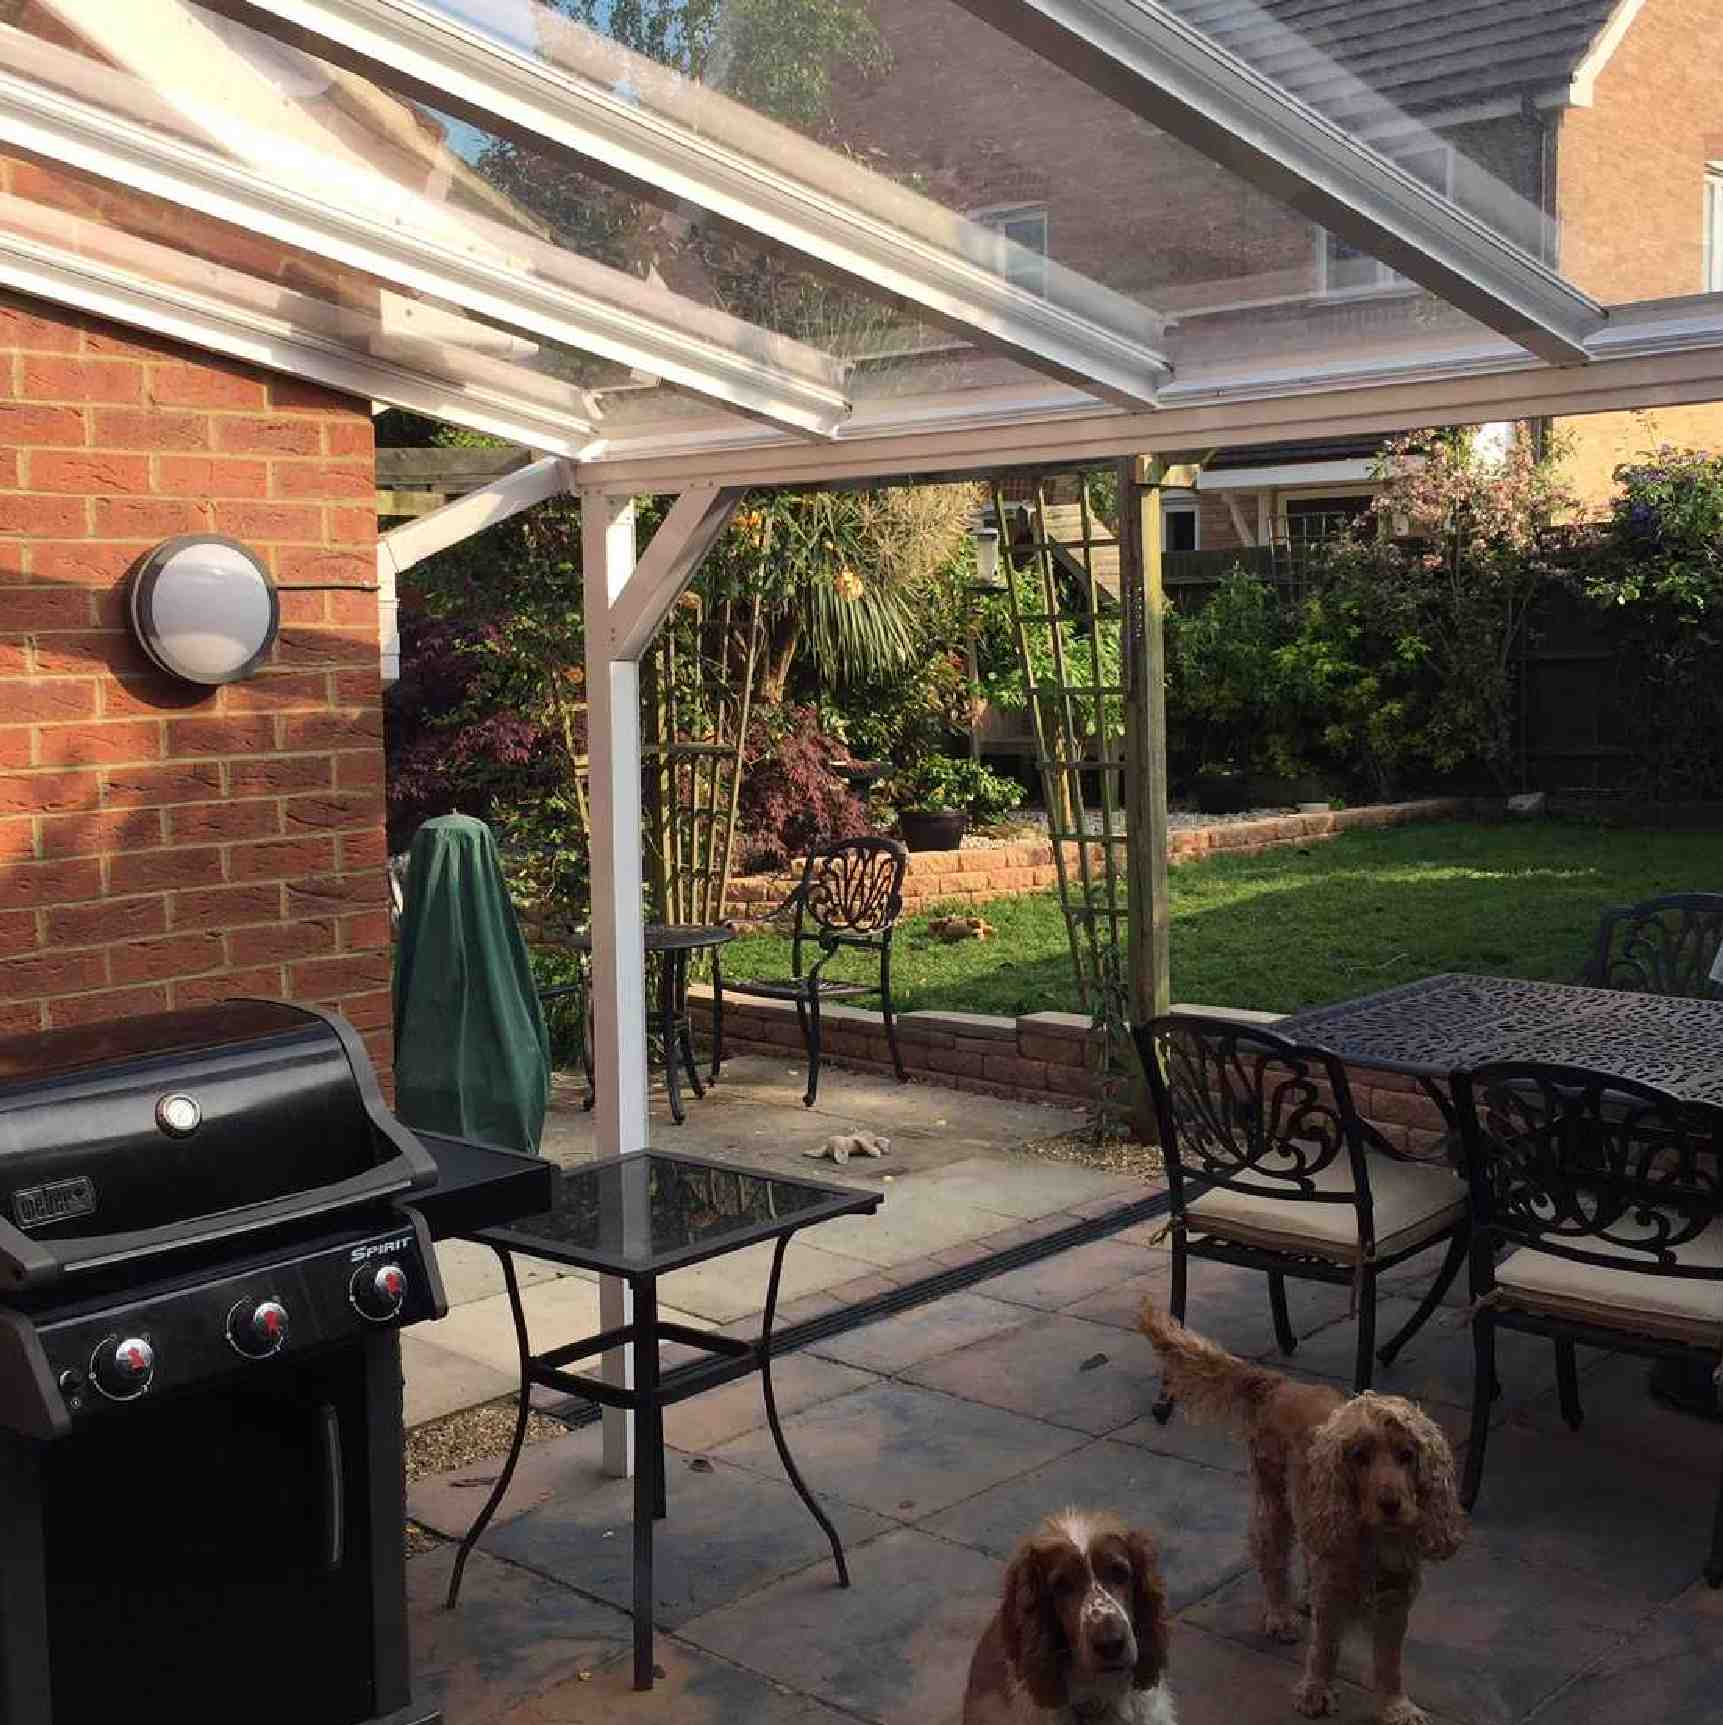 Omega Verandah with 16mm Polycarbonate Glazing - 6.0m (W) x 4.5m (P), (3) Supporting Posts